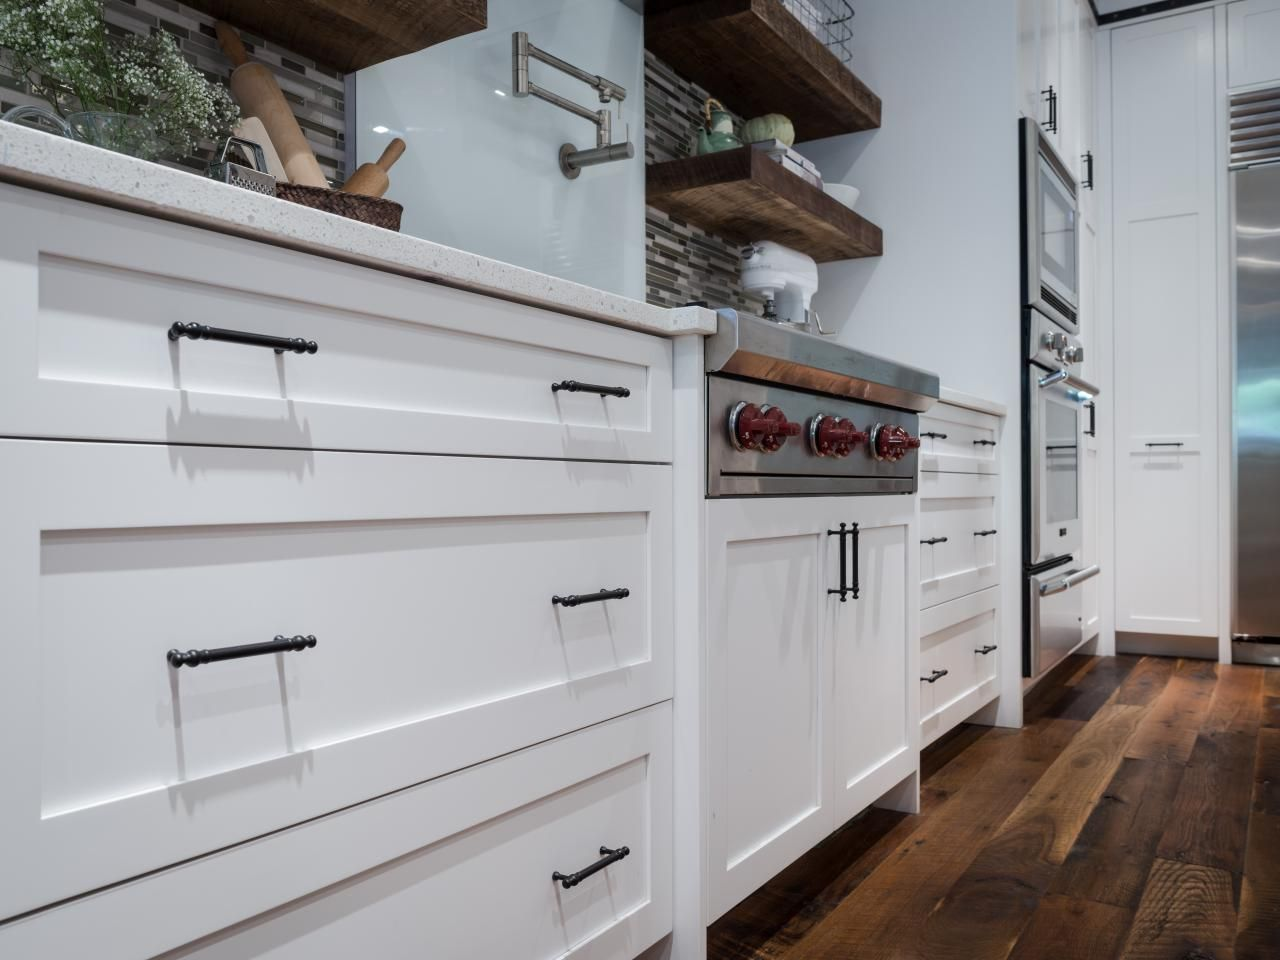 White Shaker Style Cabinetry With Oil Rubbed Bronze Drawer Pulls Shaker Style Cabinetry Rustic Kitchen Cabinets Shaker Style Cabinets